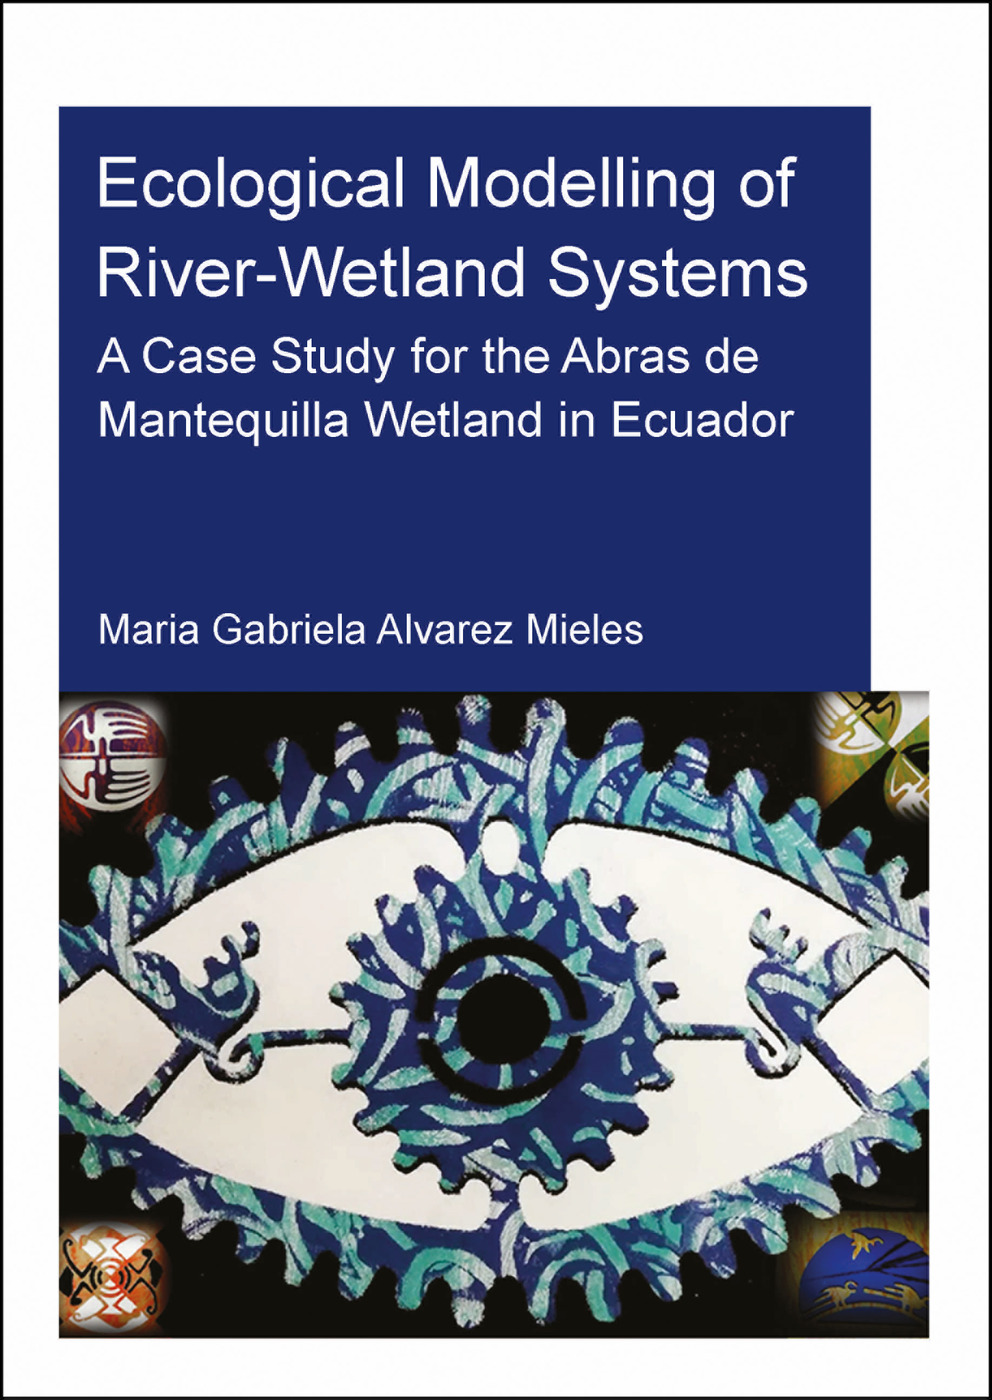 Ecological Modelling of River-Wetland Systems: A Case Study for the Abras de Mantequilla Wetland in Ecuador book cover